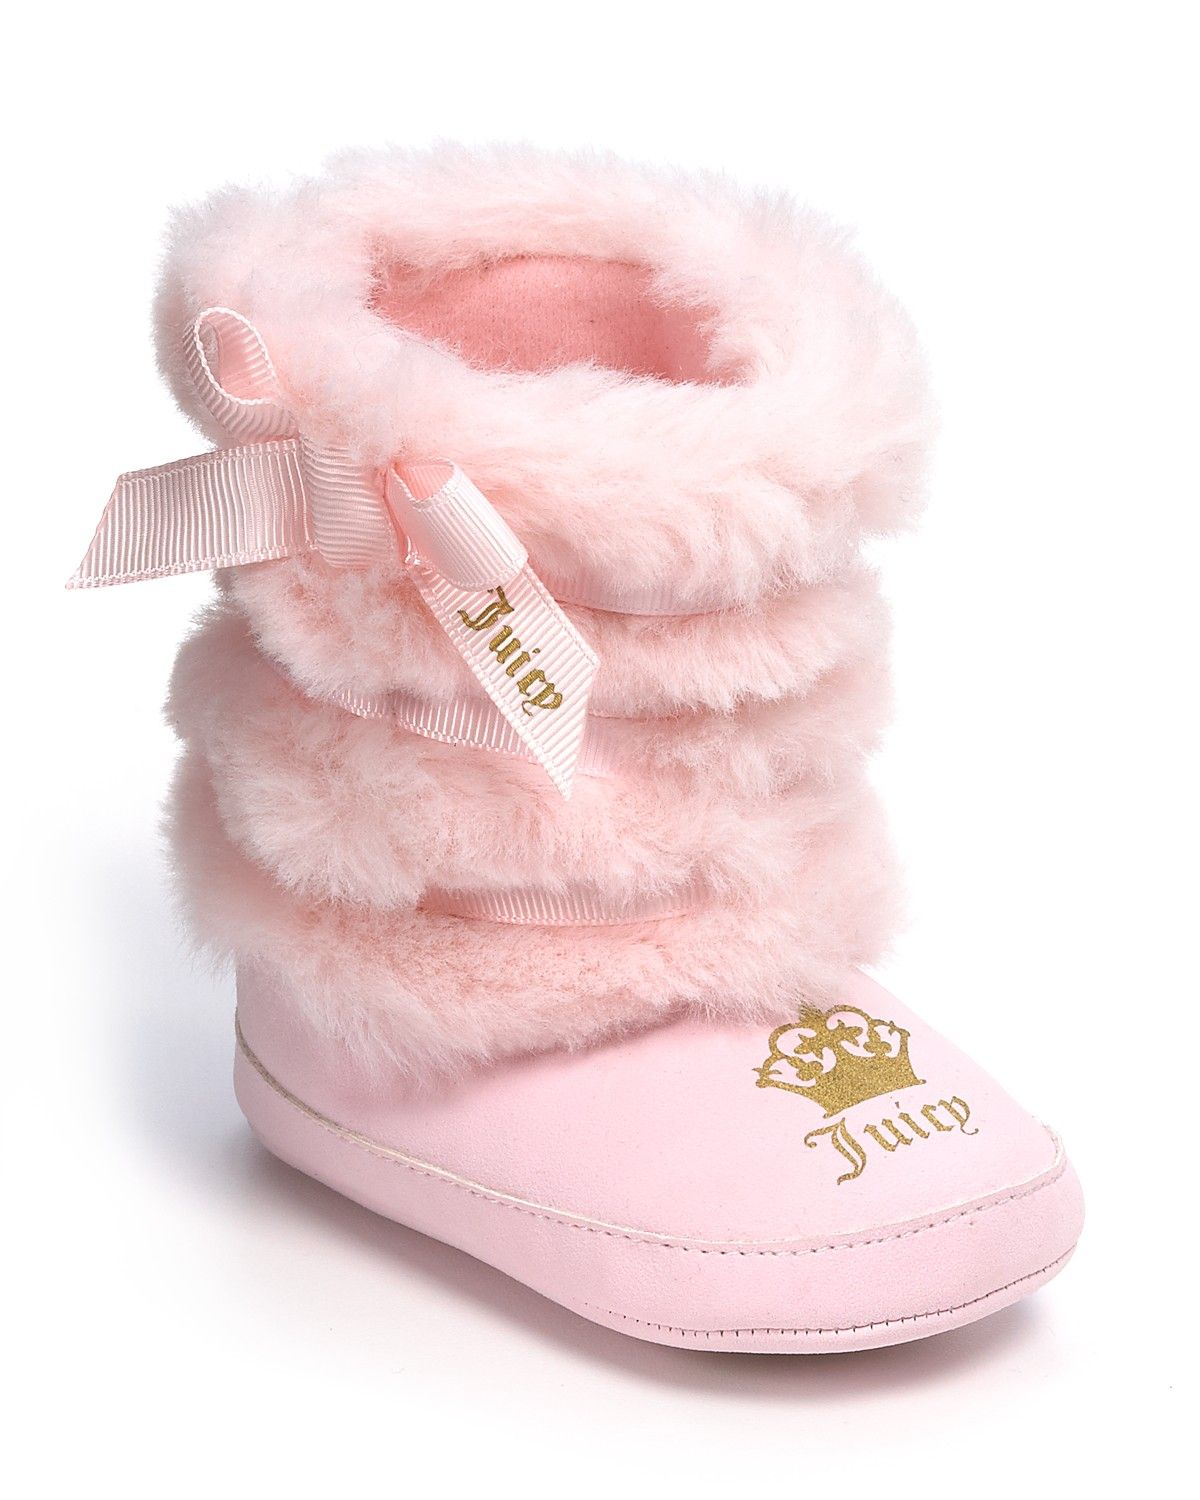 5ca6196338 Juicy Couture Infant Girls  Faux Fur Boots - Sizes 3-12 Months ...